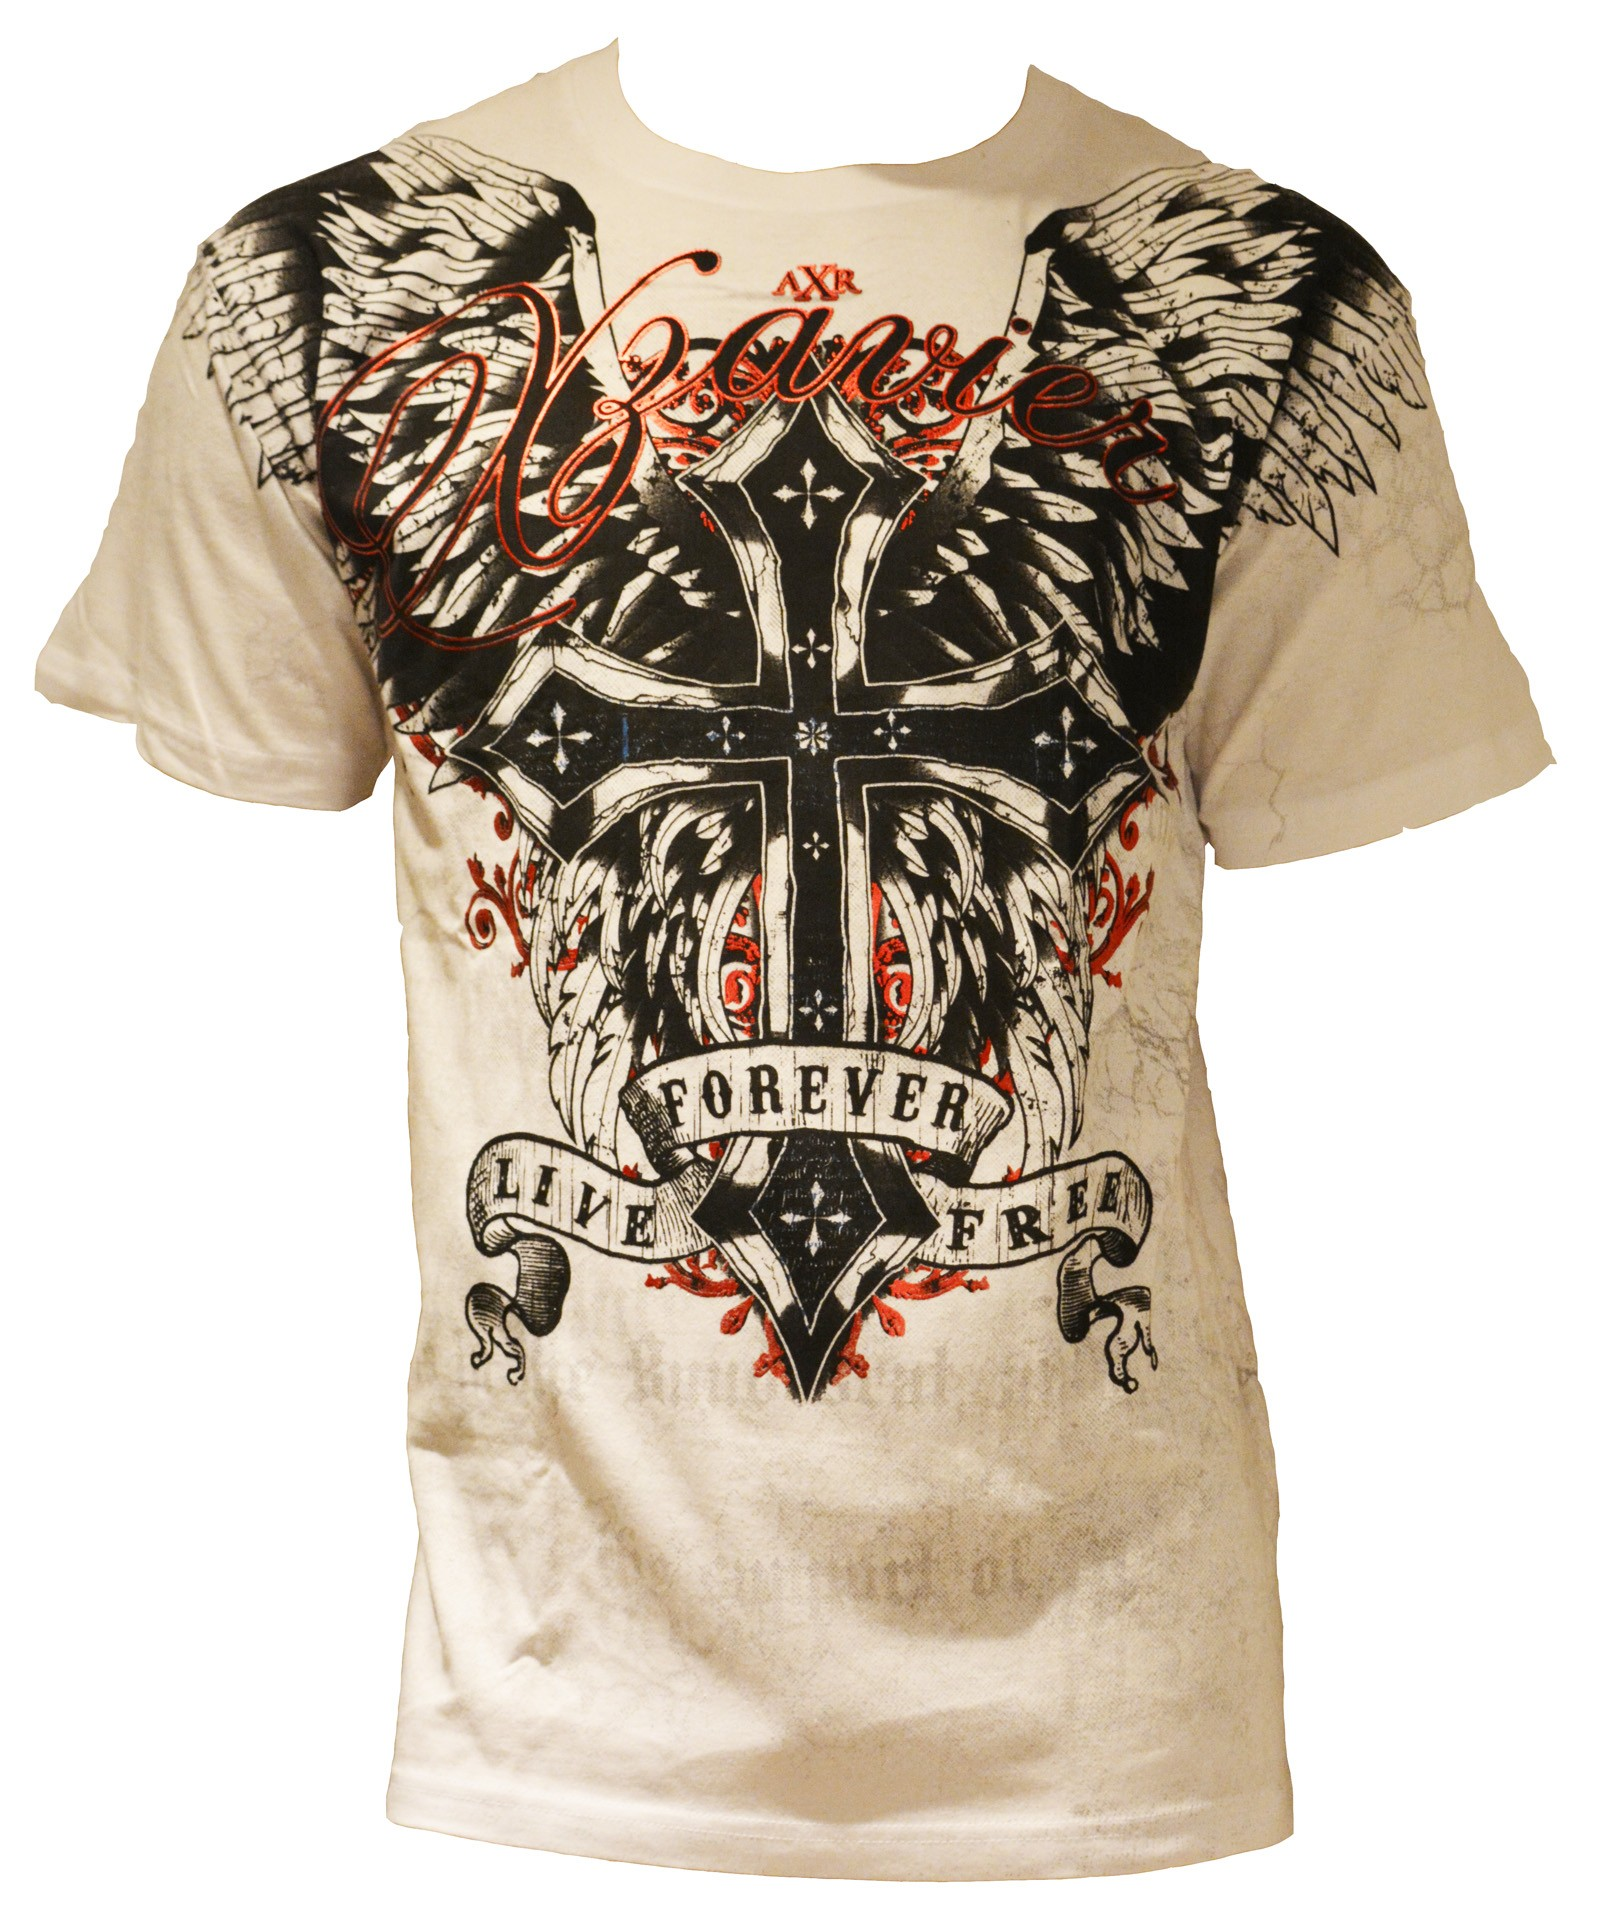 Xzavier - Live Free Forever T-Shirt Front